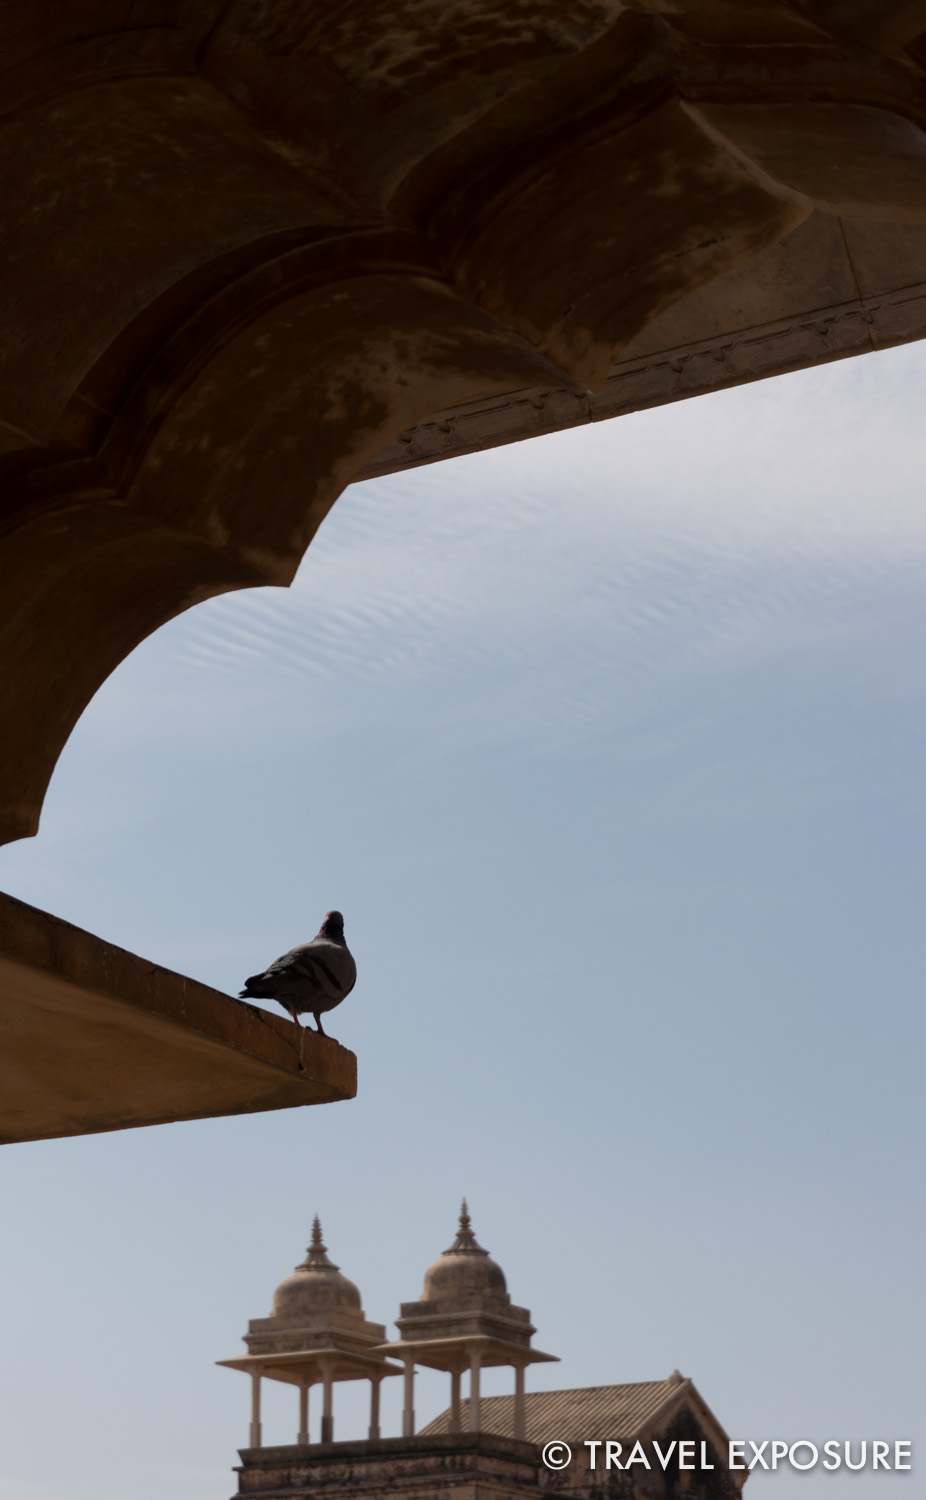 T  he Amber Fort/Palace in Jaipur